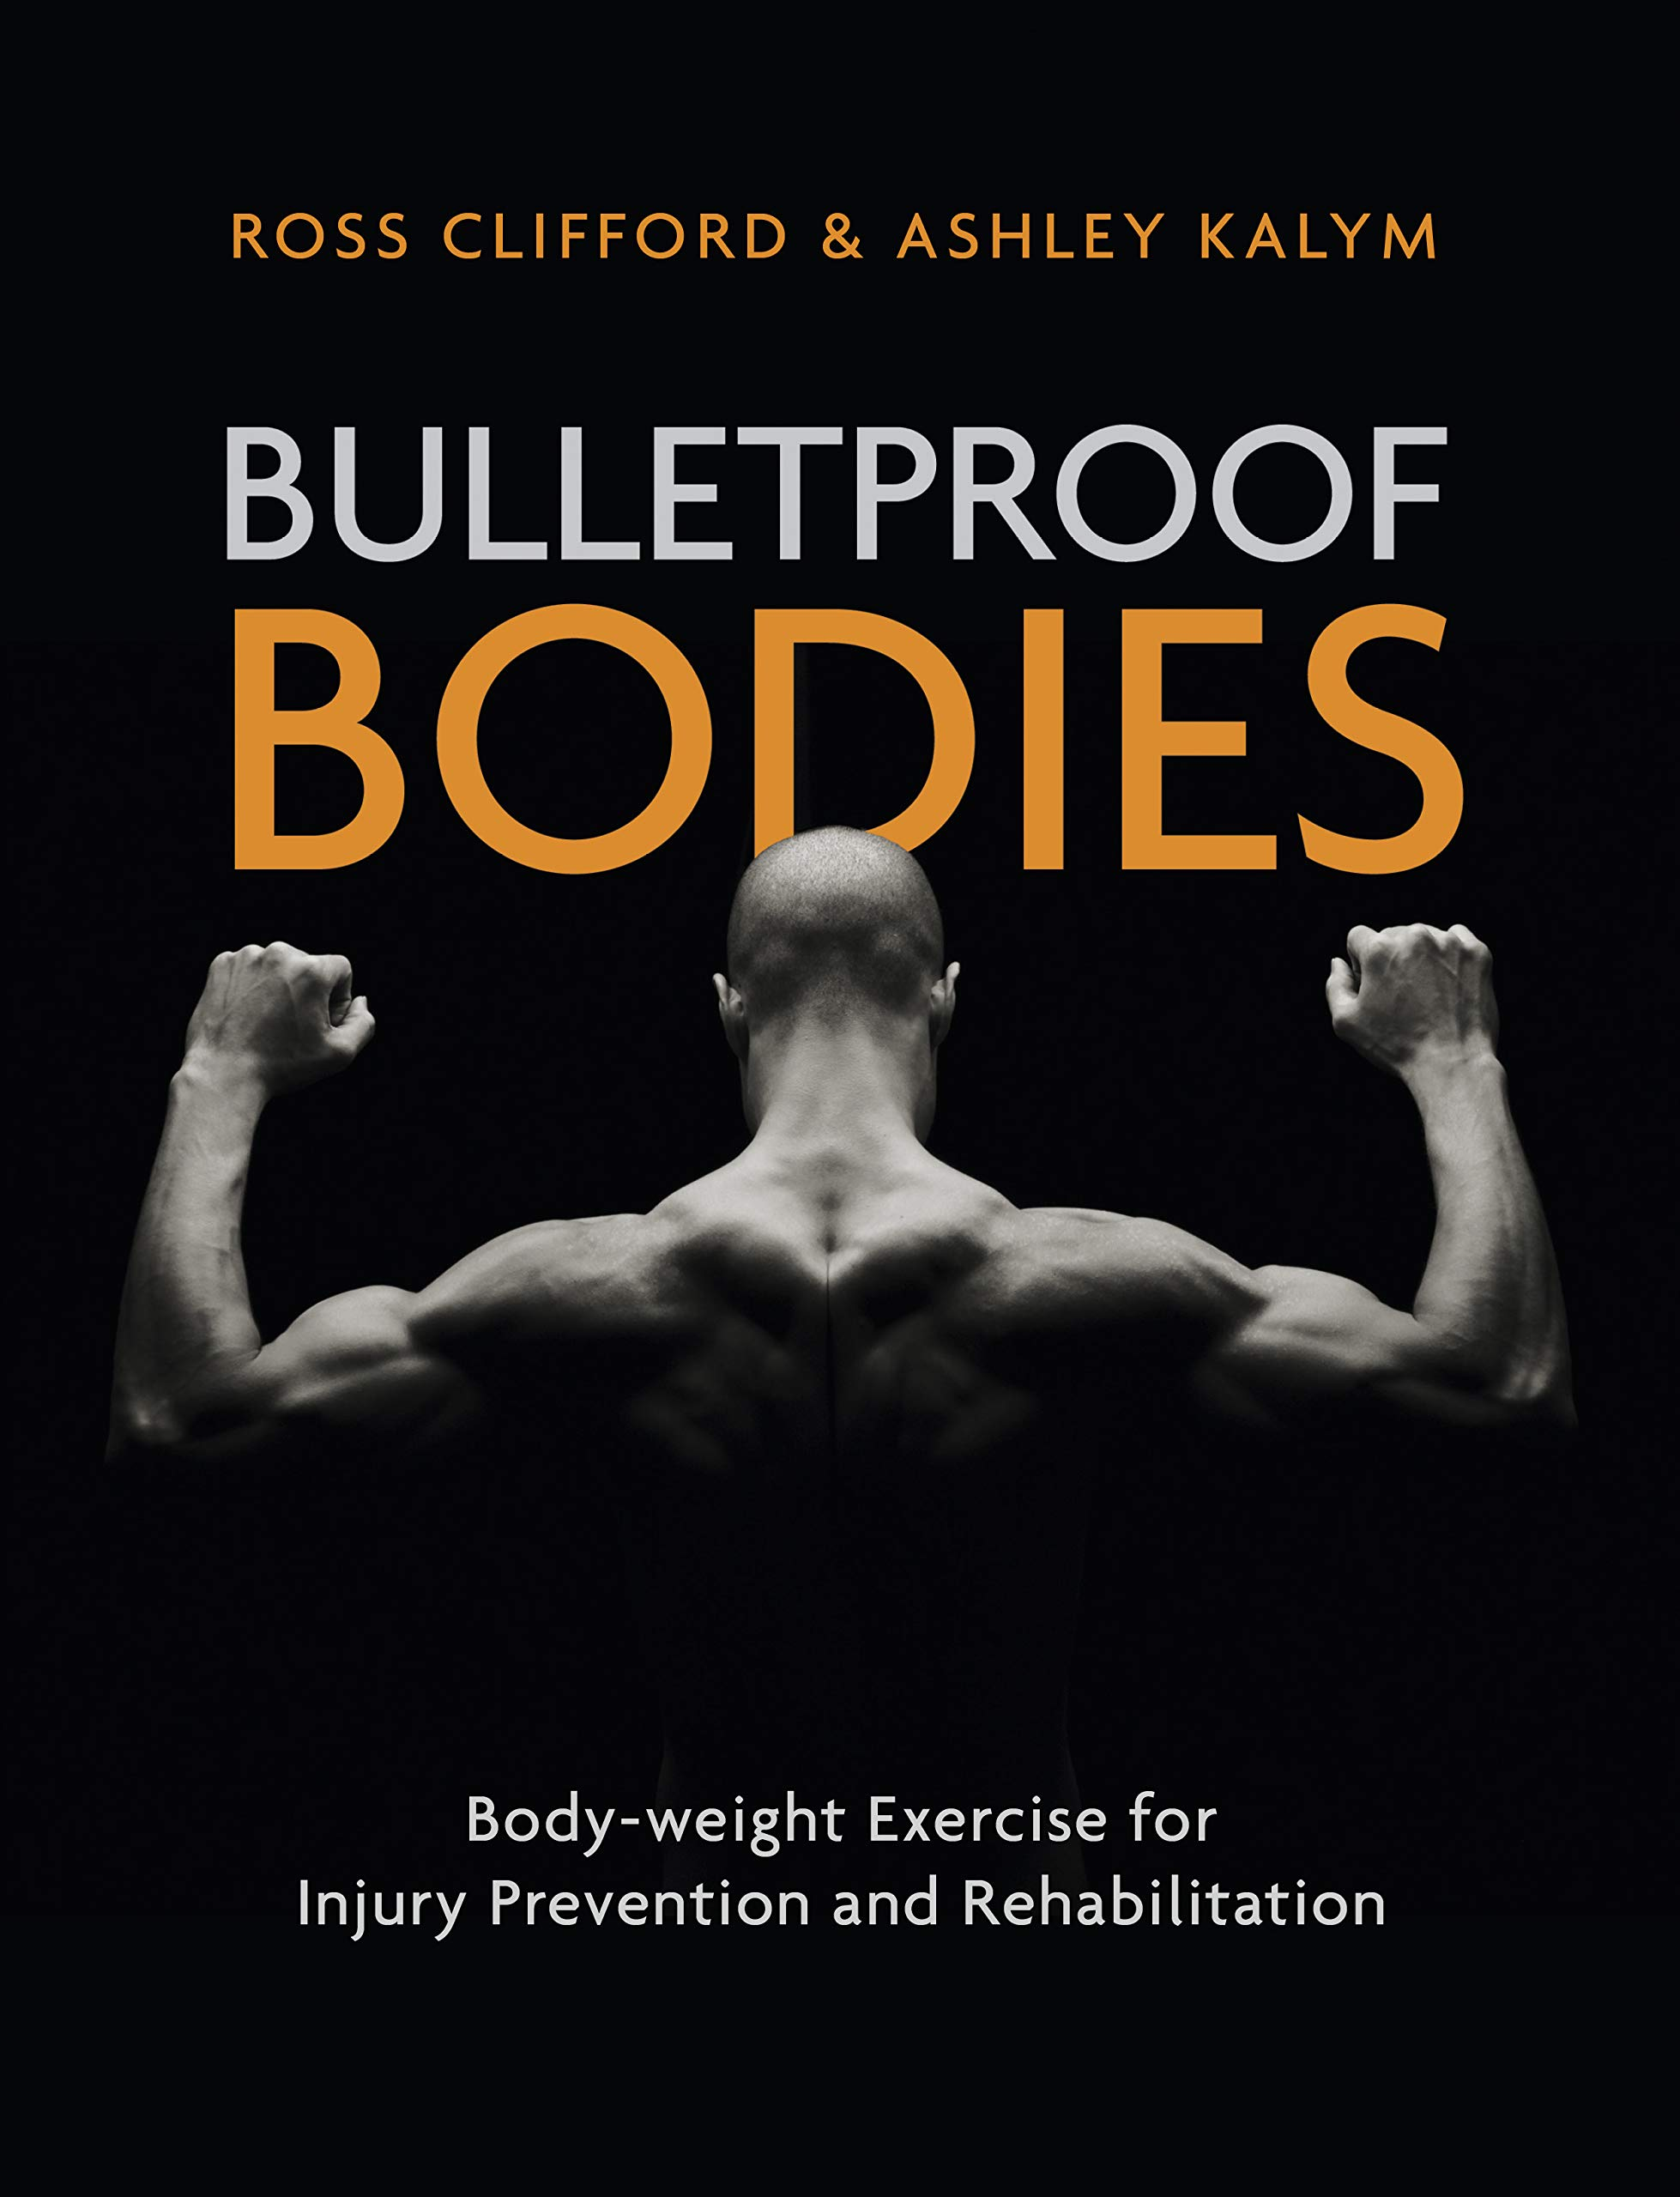 Bulletproof Bodies: Body-weight Exercise for Injury Prevention and Rehabilitation by Cardinal Publishers Group